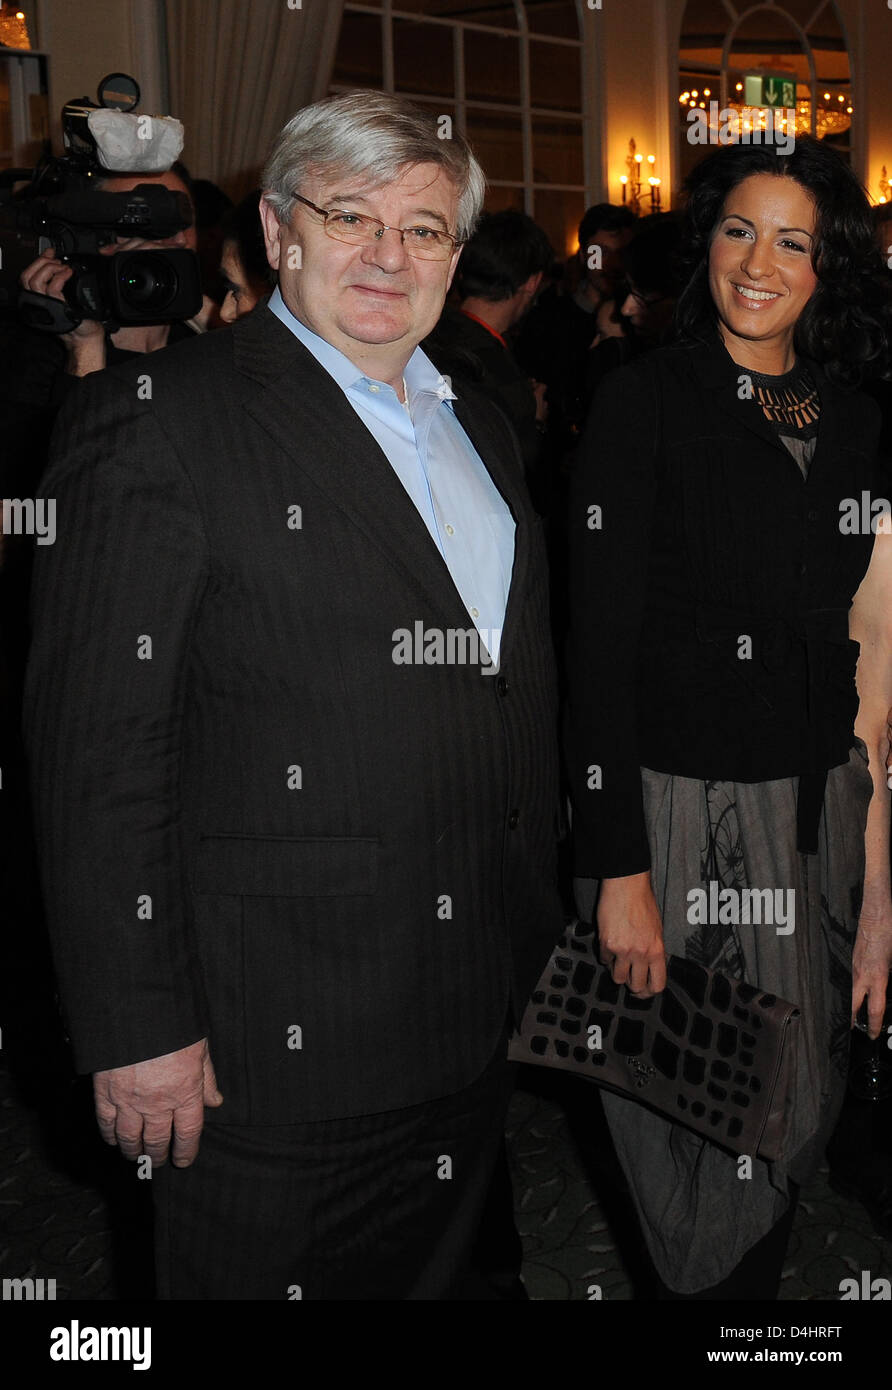 German former foreign minister Joschka Fischer (L) and his wife Minu Barati-Fischer (R) arrive for the afterparty - Stock Image